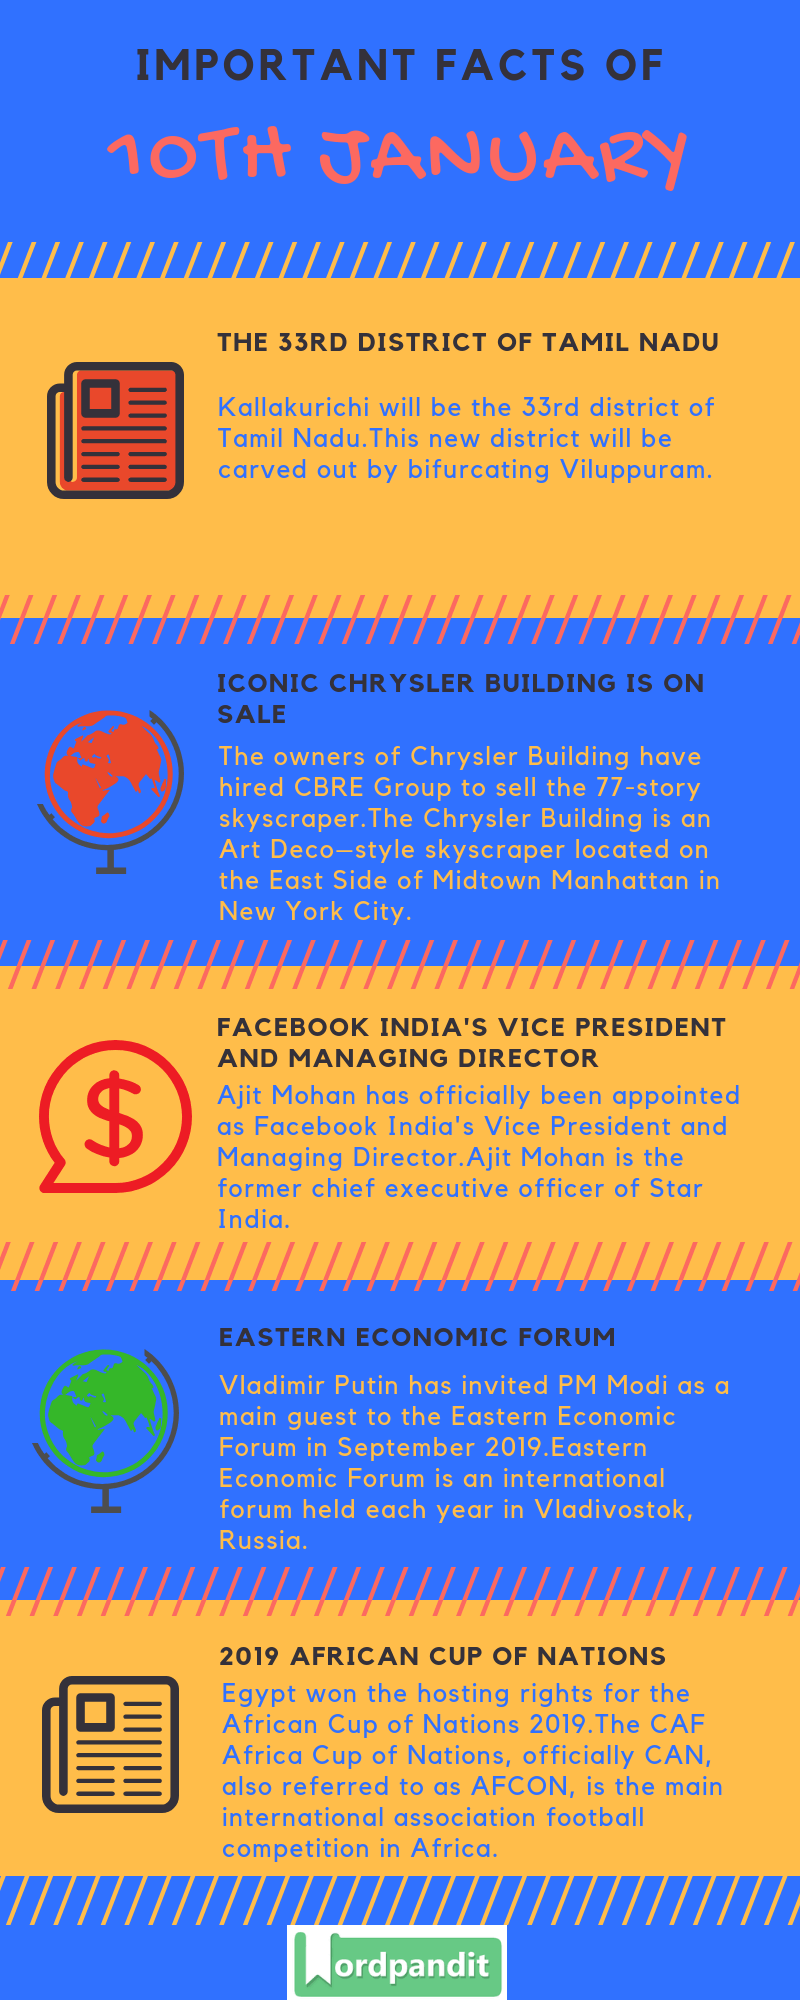 Daily Current Affairs 10 January 2019 Current Affairs Quiz 10 January 2019 Current Affairs Infographic